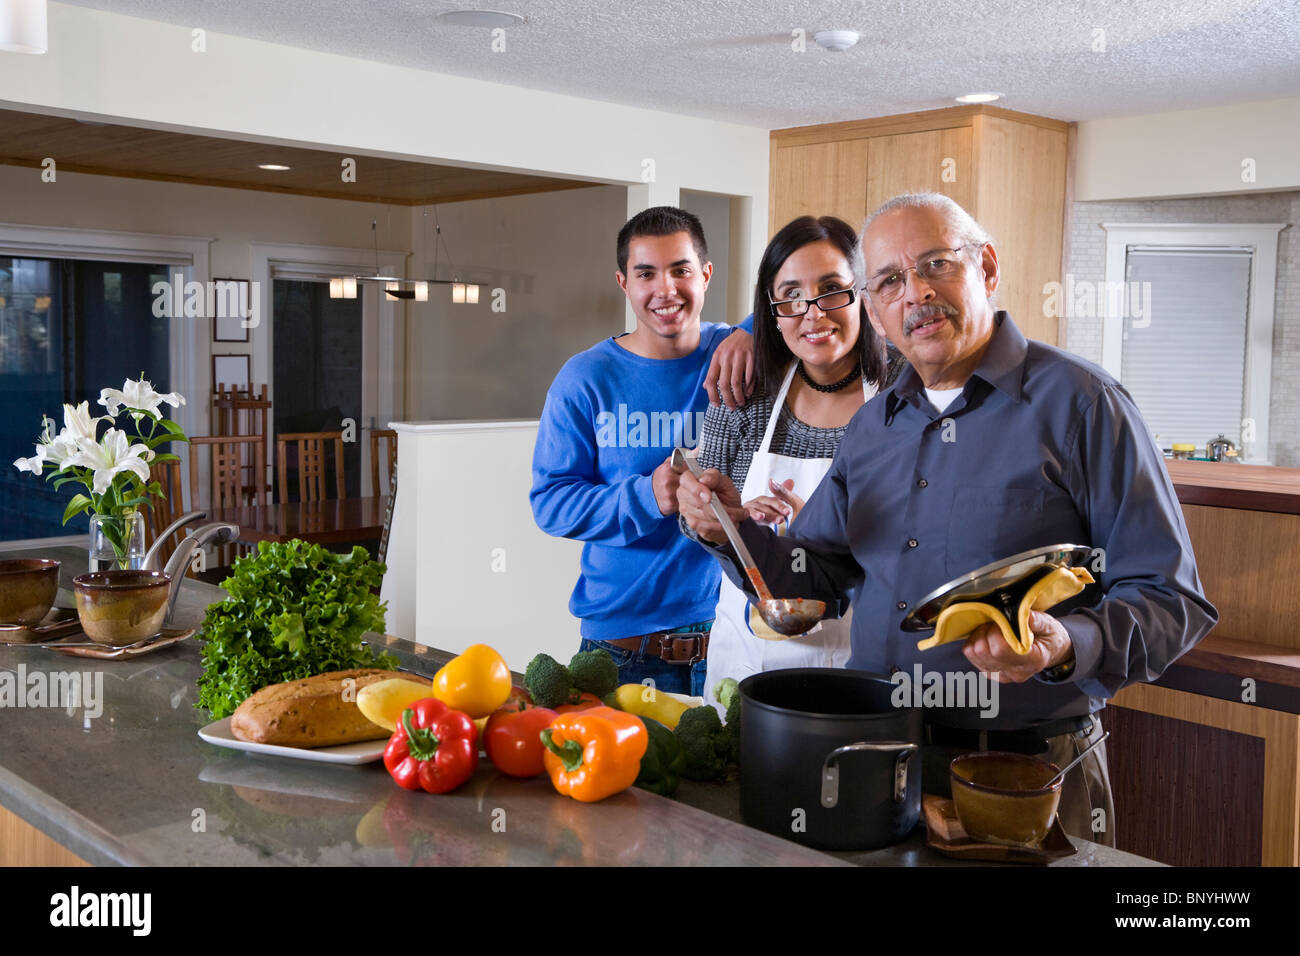 Family cooking kitchen - Stock Photo Three Generations Hispanic Family Cooking Together In Kitchen At Home